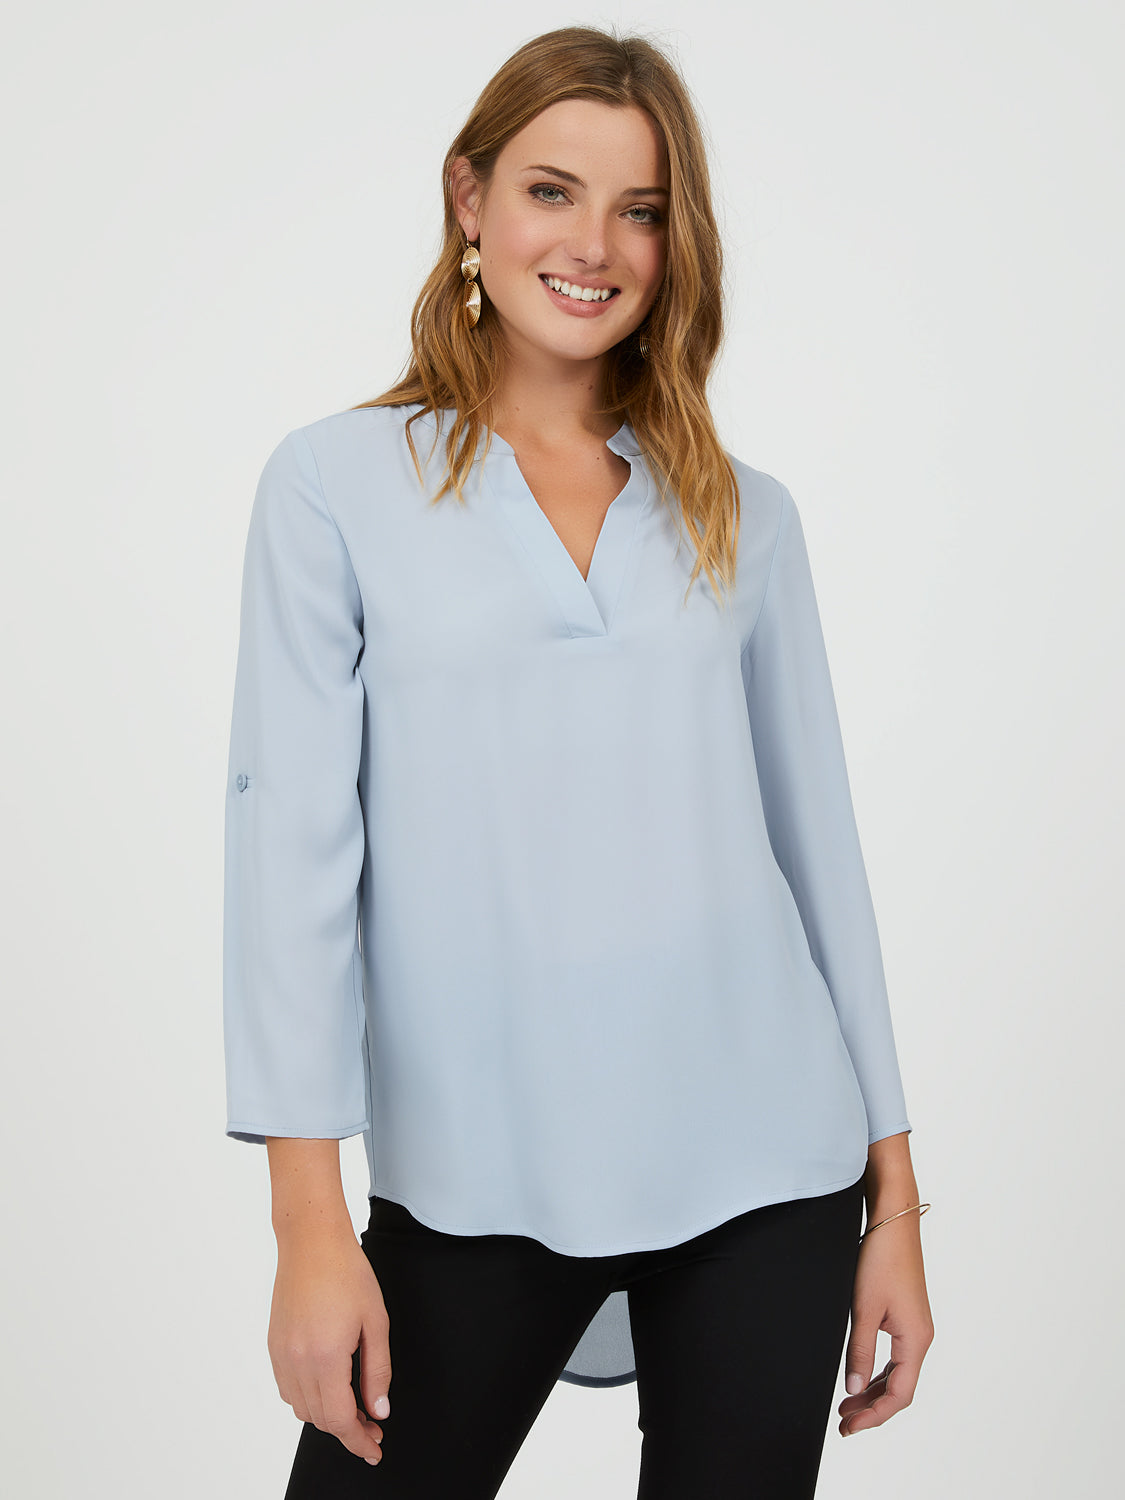 ¾ Sleeve Chiffon Popover Blouse